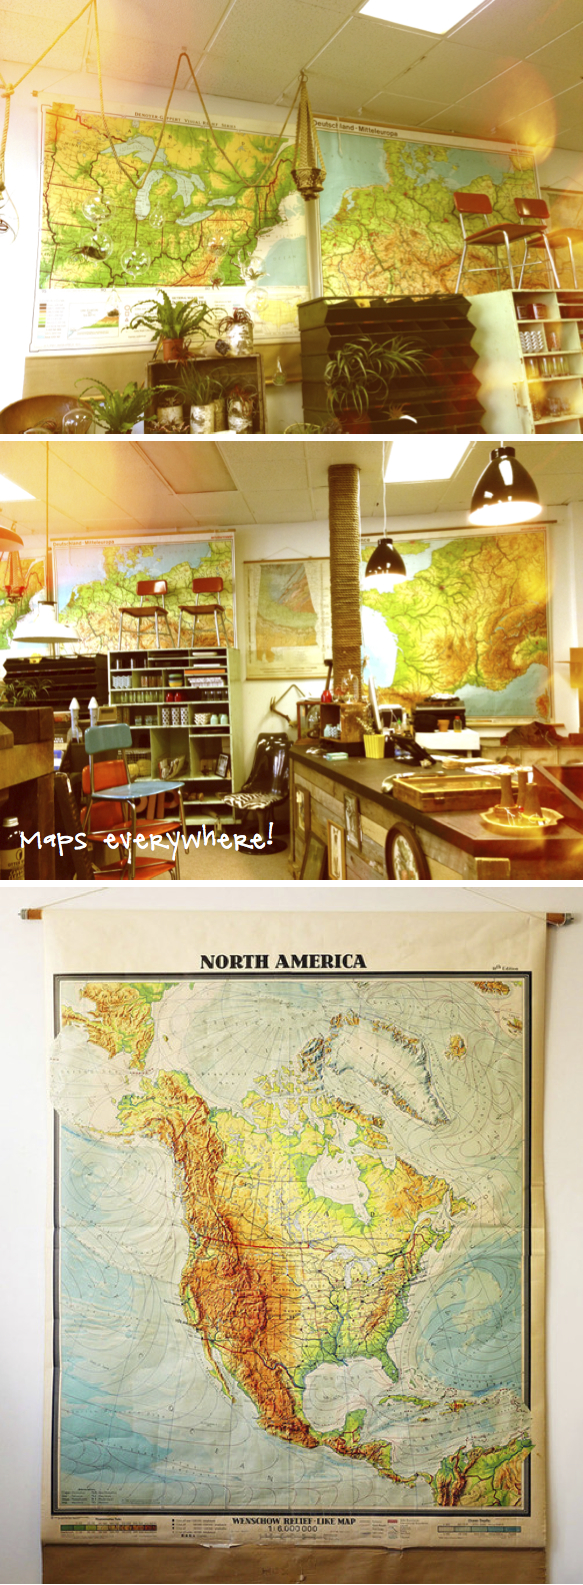 Kristina Crestin Design Diamonds and Rust vintage maps